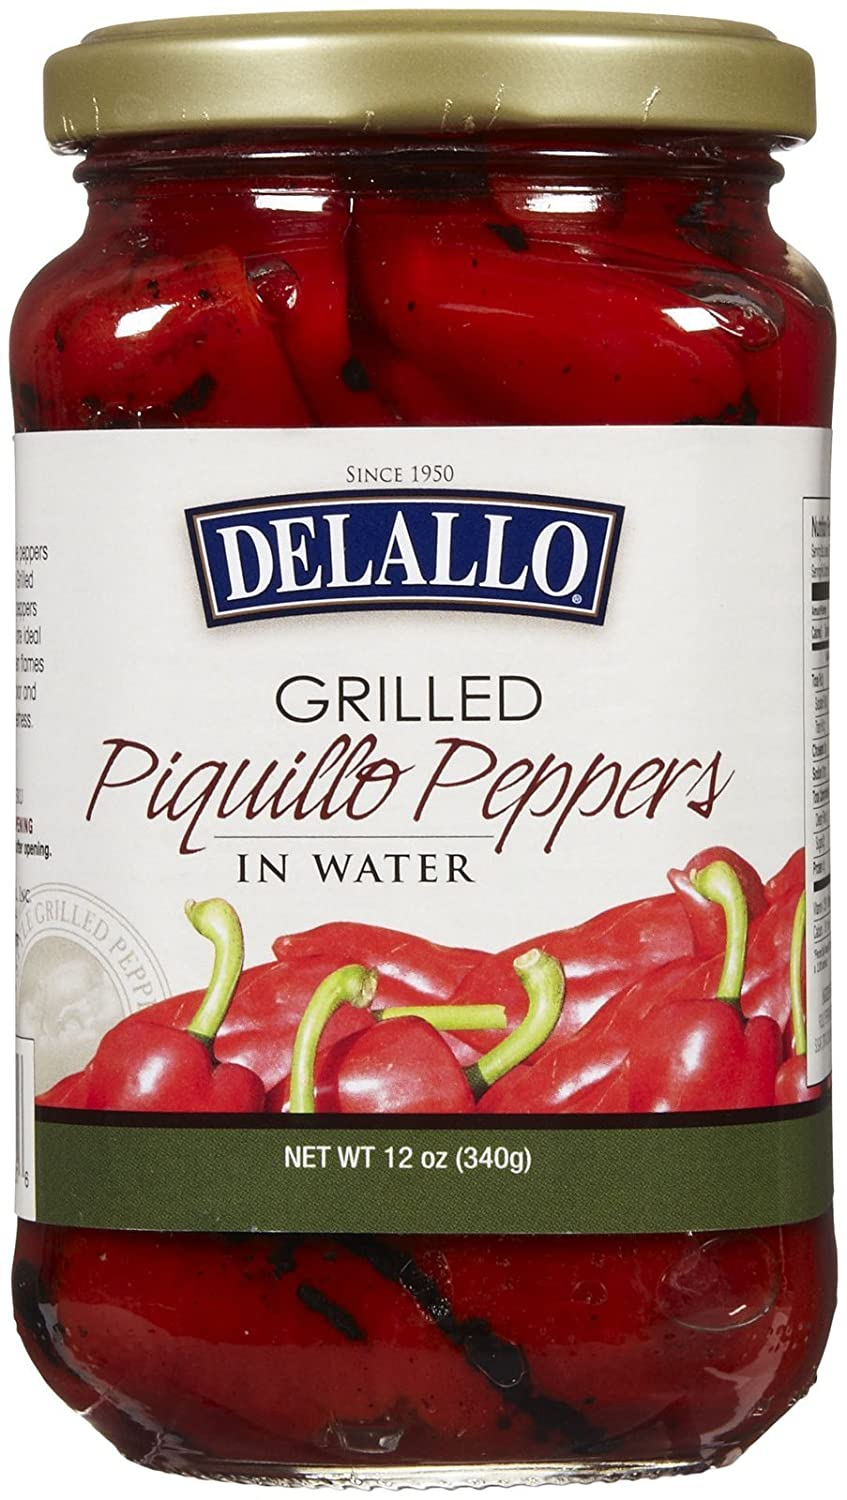 B00MN3DEQY Delallo Grilled Piquillo Pepper, 12 oz 71FfZJmEr1L